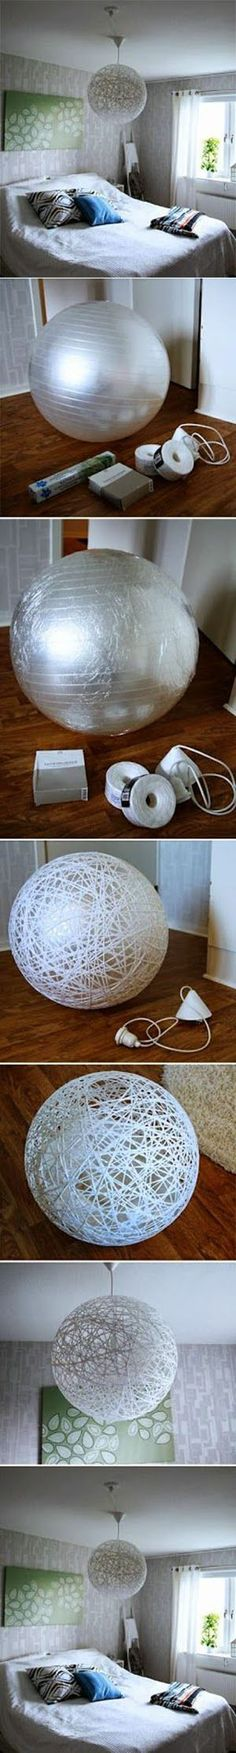 Cool Ball Light | DIY & Crafts Tutorials